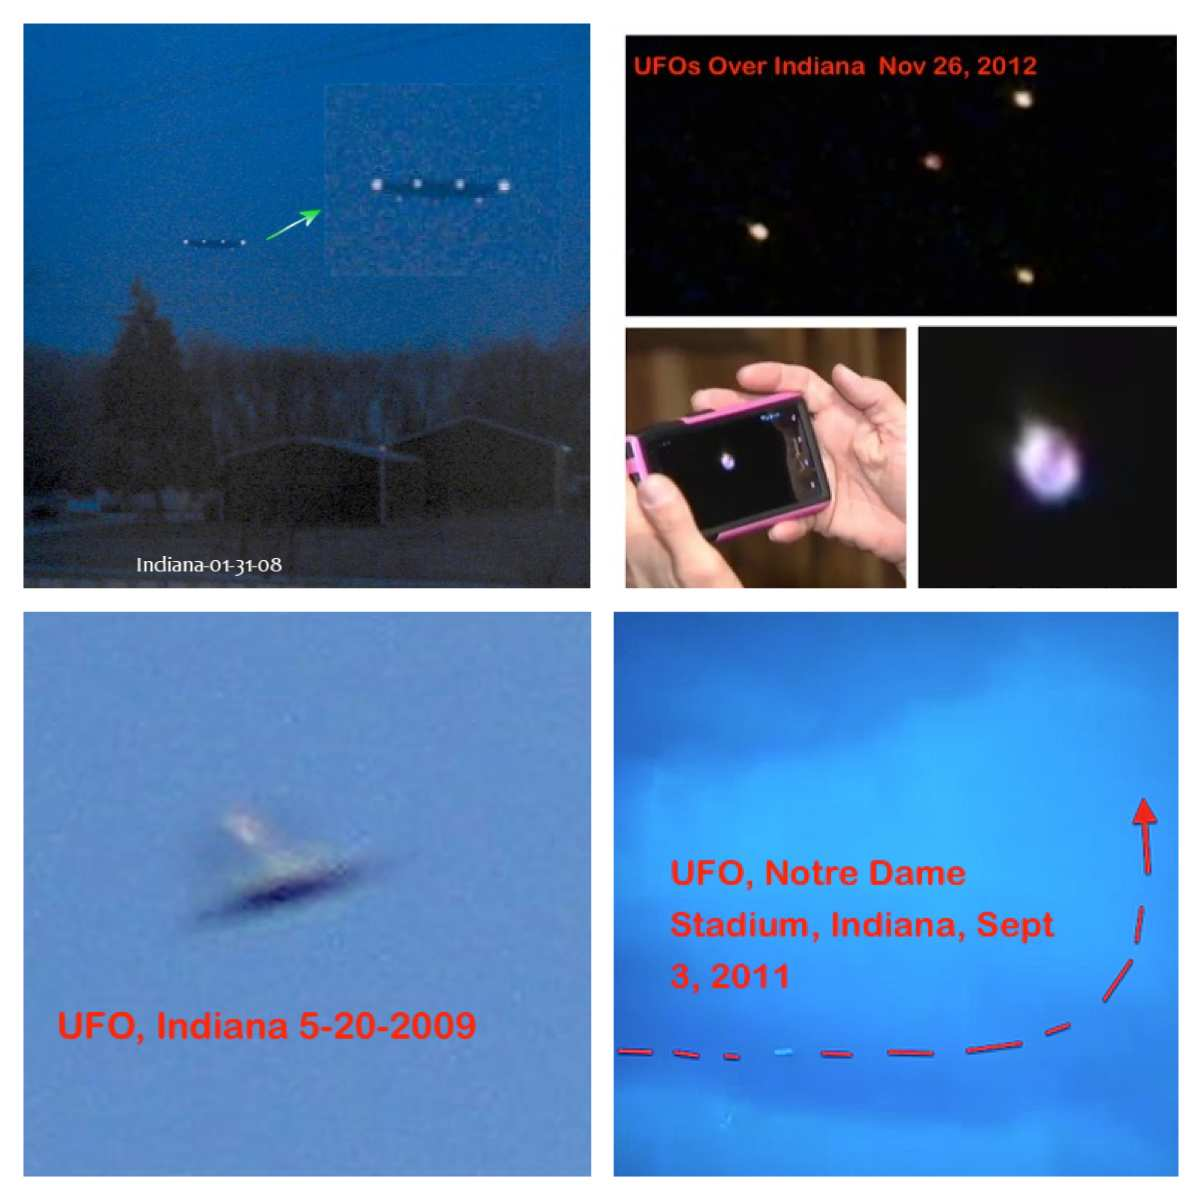 ufo sightings daily indiana woman reveals family secret ufo